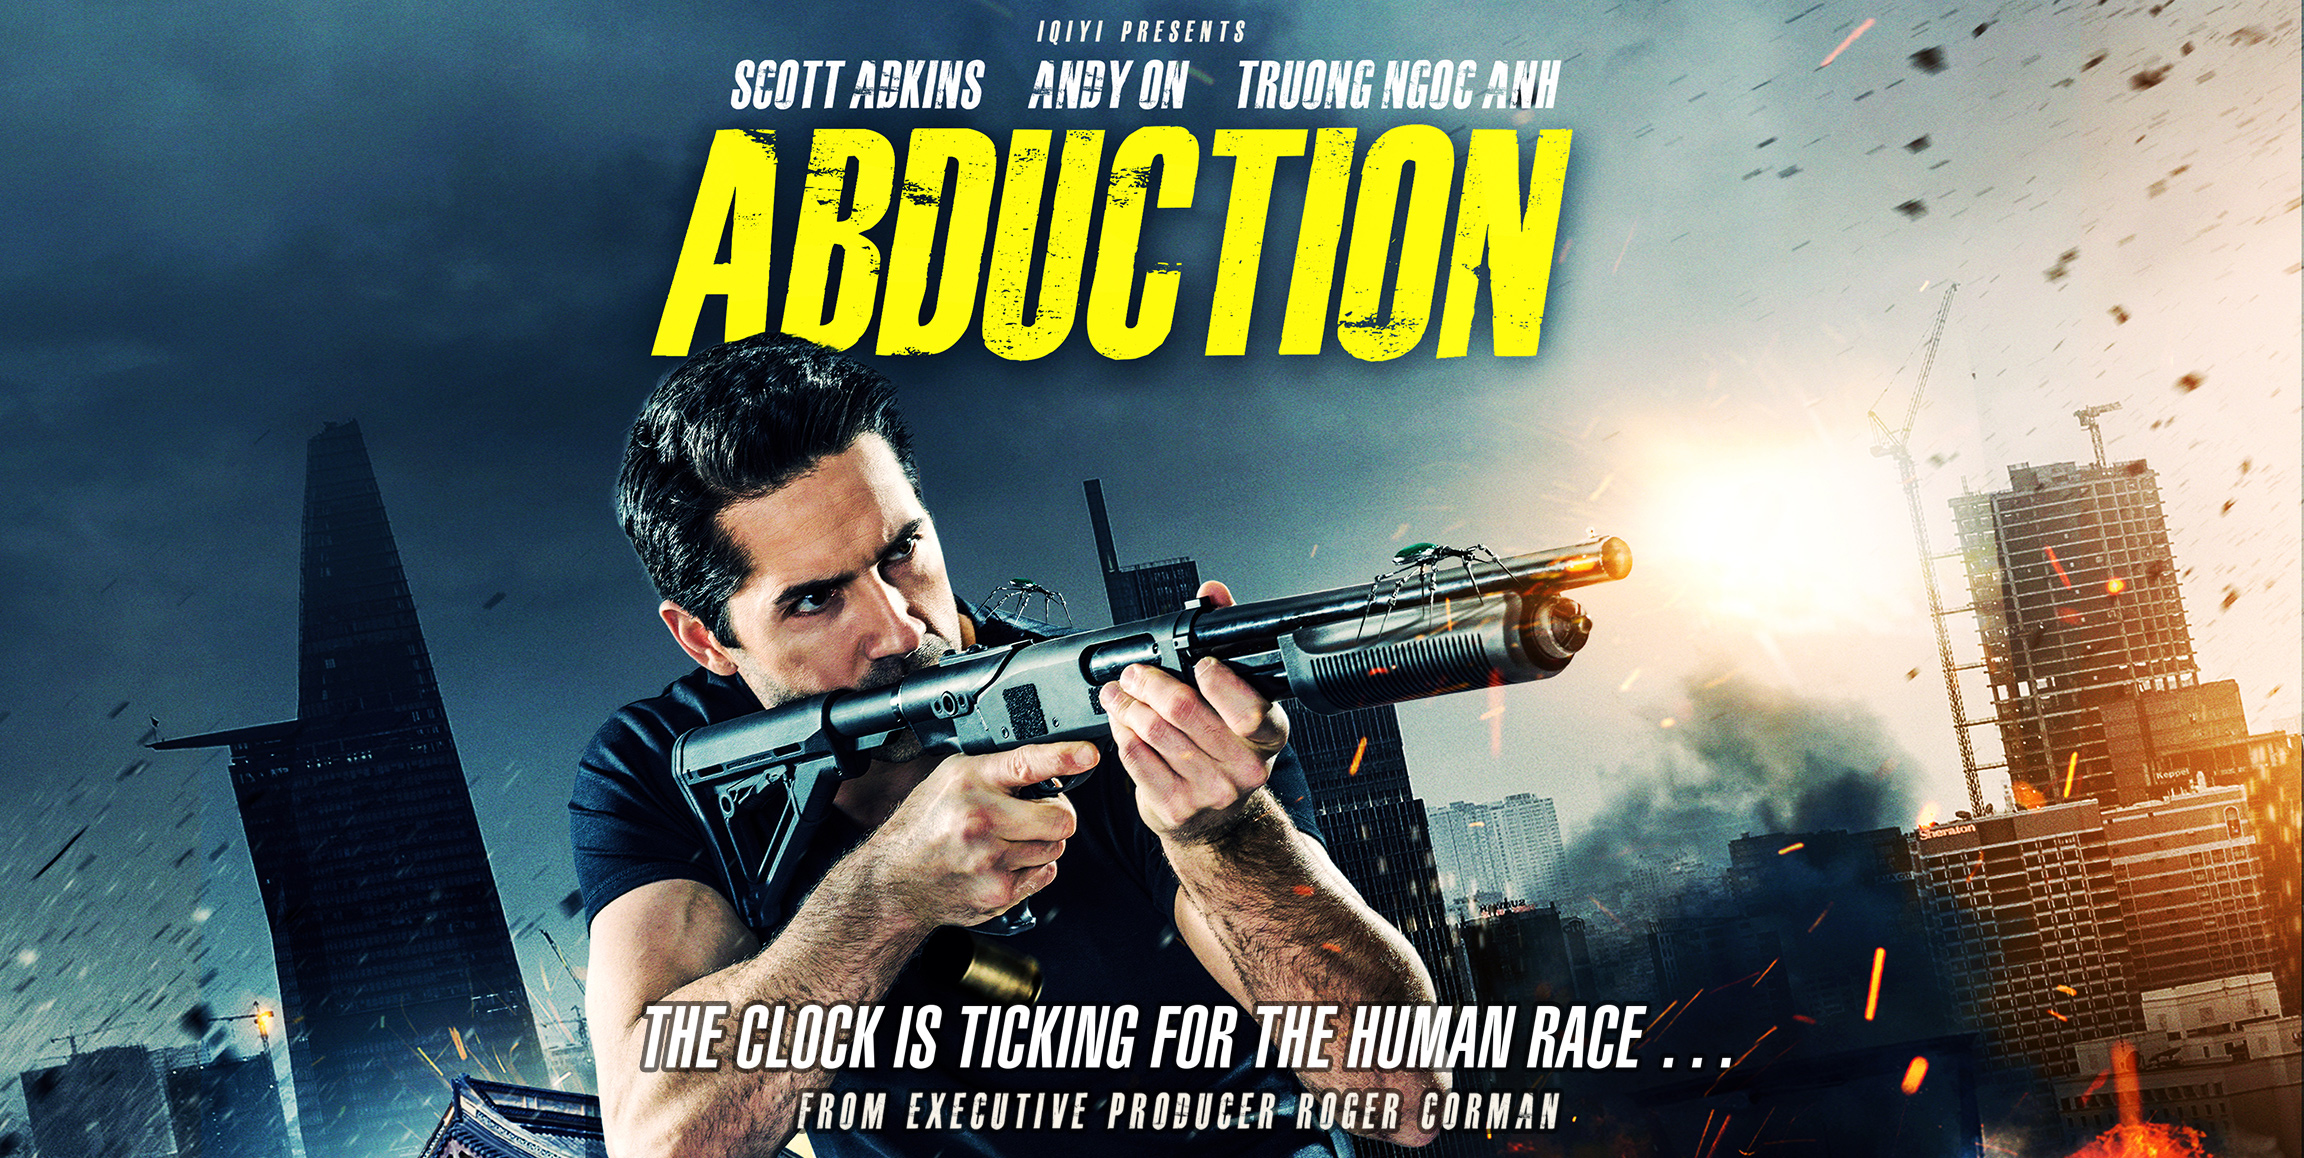 From Executive Producer Roger Corman And Directed By Ernie Barbarash ABDUCTION In Theaters, On Demand And Digital On June 7, 2019